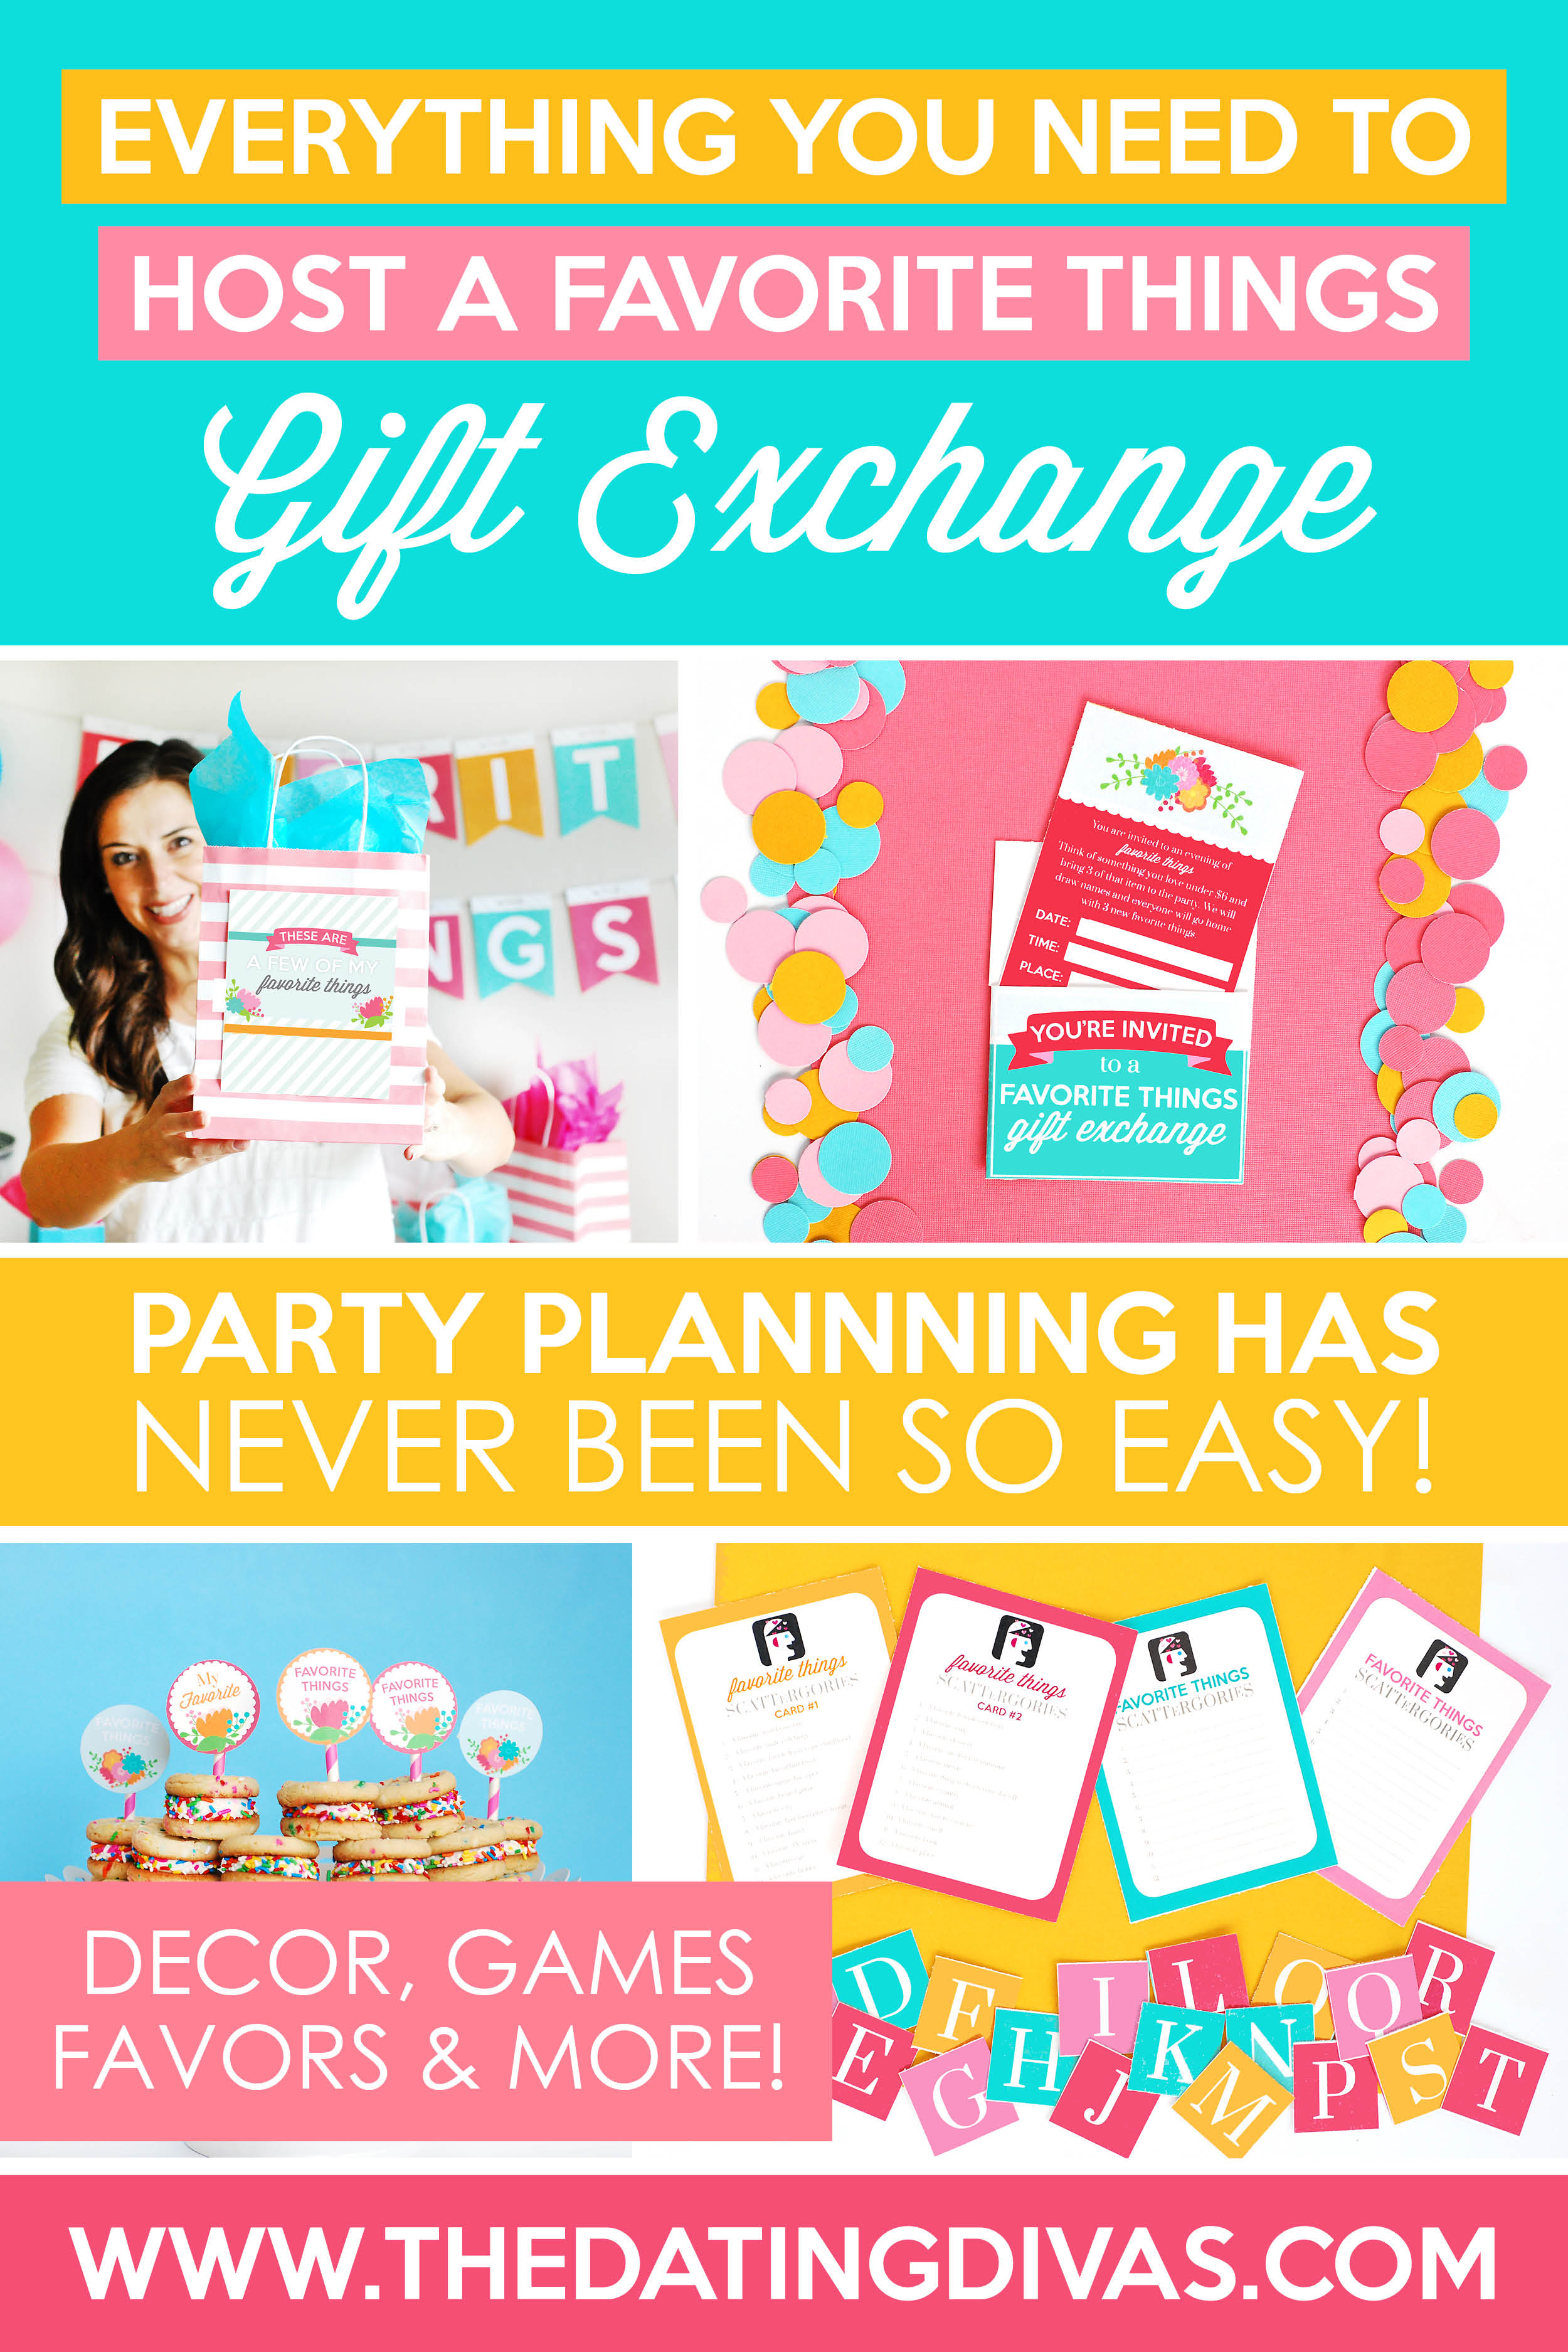 Favorite Things Party Ideas! I always wanted to host a Favorite Things Gift Exchange Party with my girlfriends! This site has everything I need: ideas, instructions, games, decorations, printables and more! So excited for this! #FavoriteThingsPartyIdeas #FavoriteThingsGiftExchange #FavoriteThingsPartyGiftIdeas